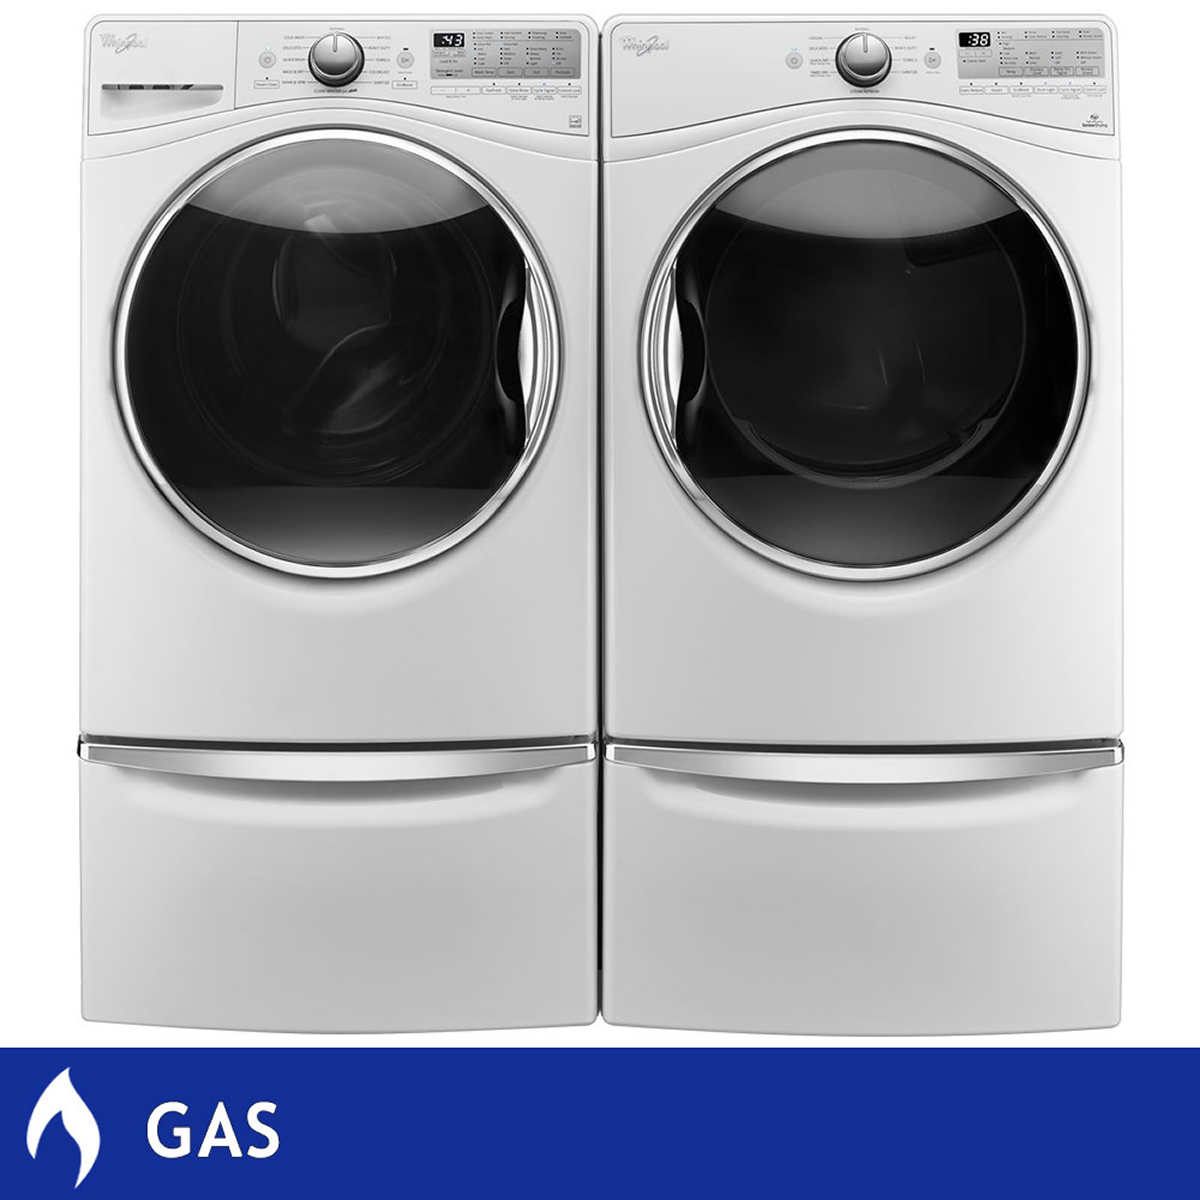 Whirlpool white ice costco - Out Of Stock Whirlpool Steam Clean 4 5cuft With Load Go Bulk Dispenser Washer 7 4cuft Gas Steam